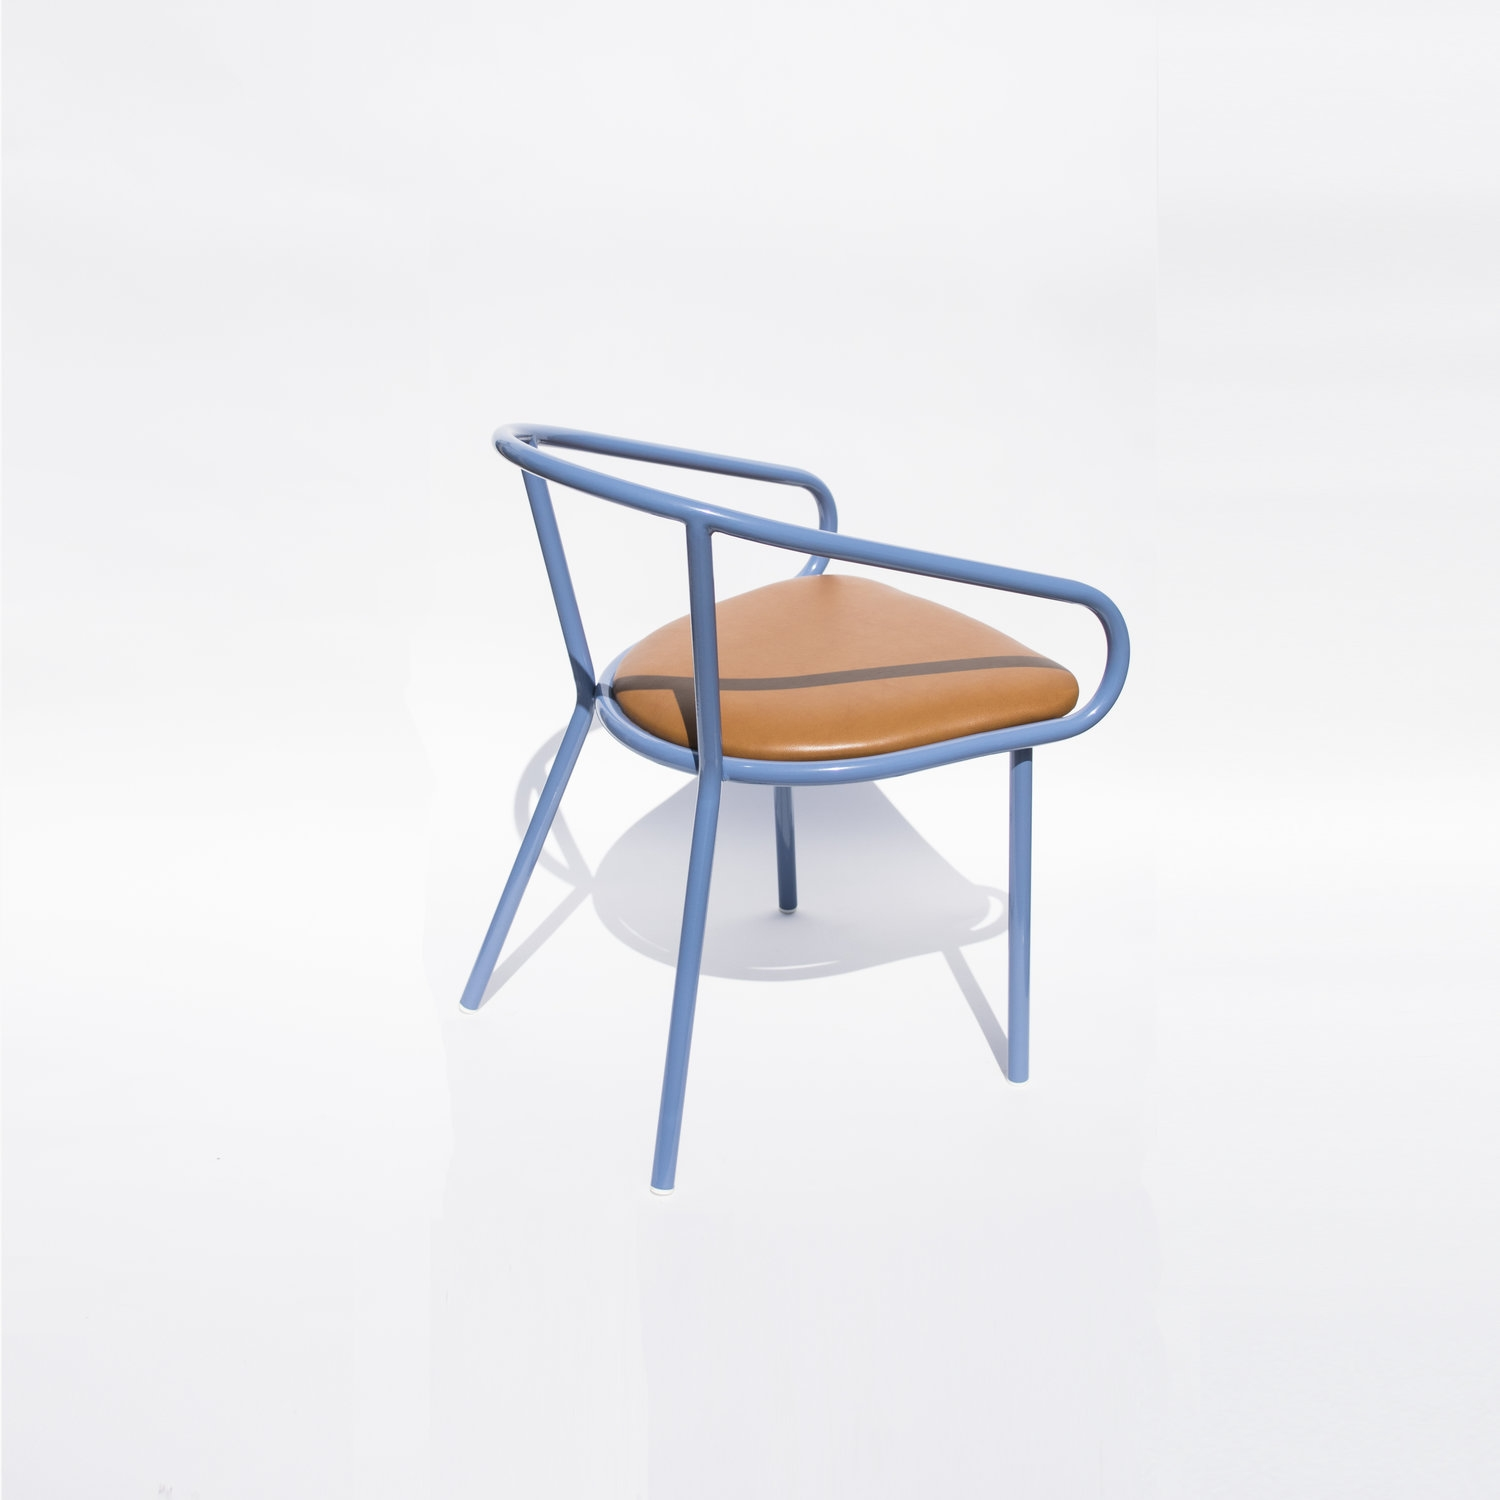 L31 Wedge Arm Chair